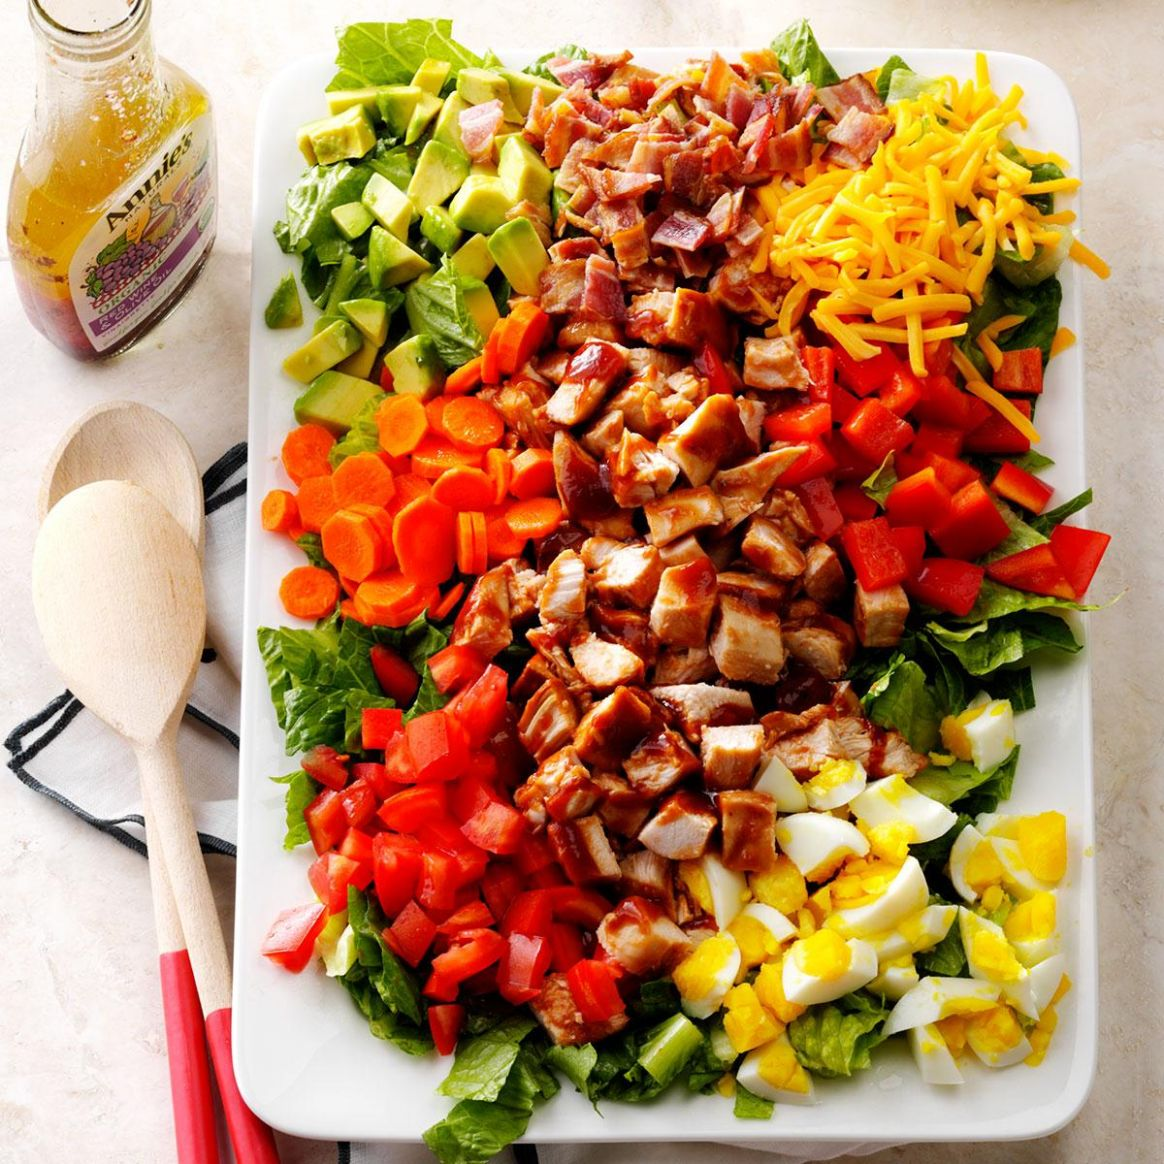 Barbecue Chicken Cobb Salad - Salad Recipes For Bbq